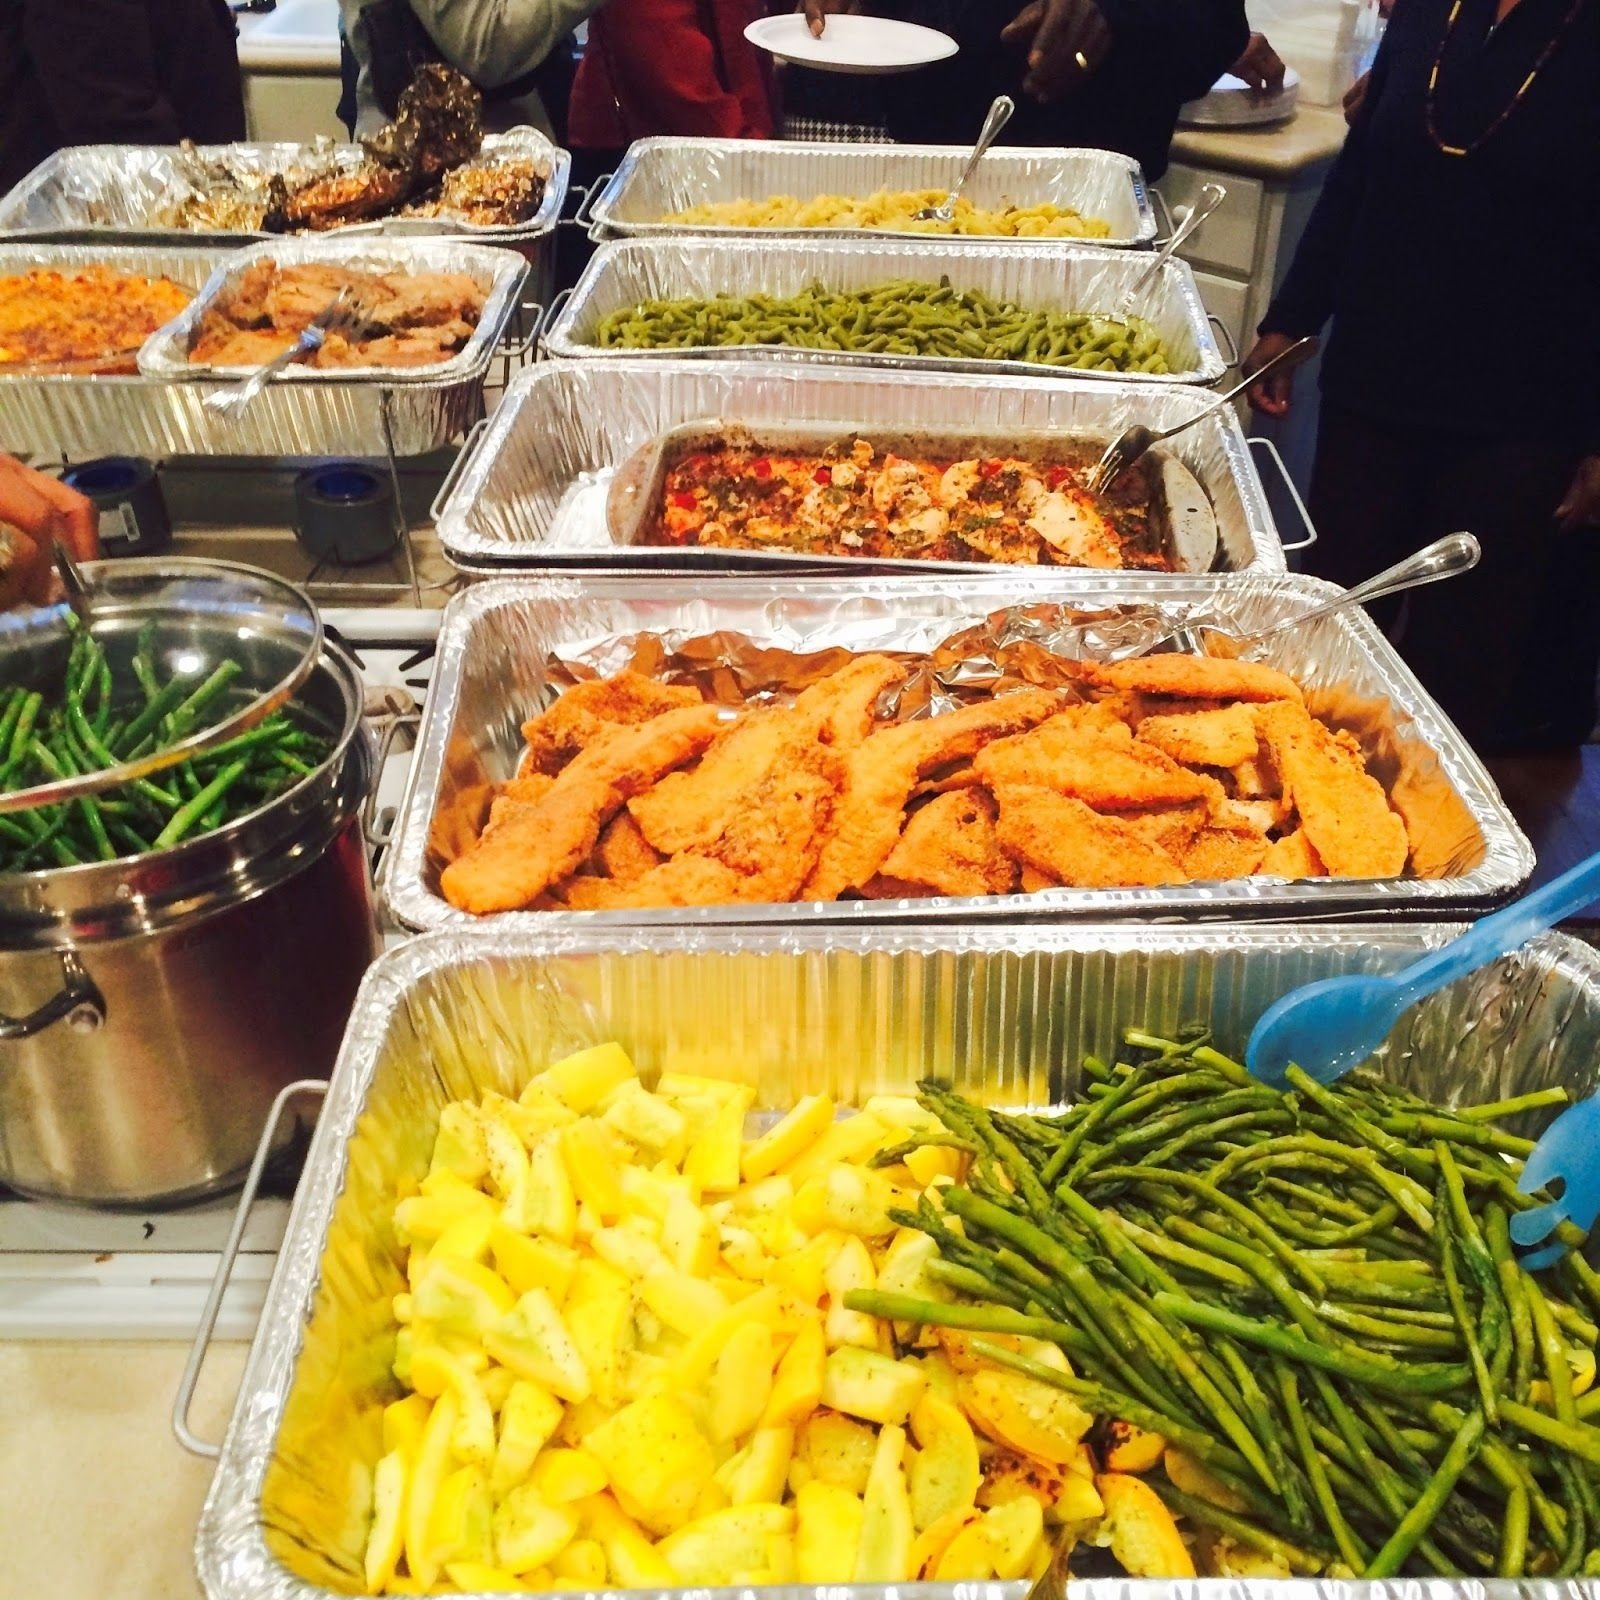 10 Trendy Lunch Ideas For A Crowd cooking a diverse meal for a large group on a budget forever i 2 2020